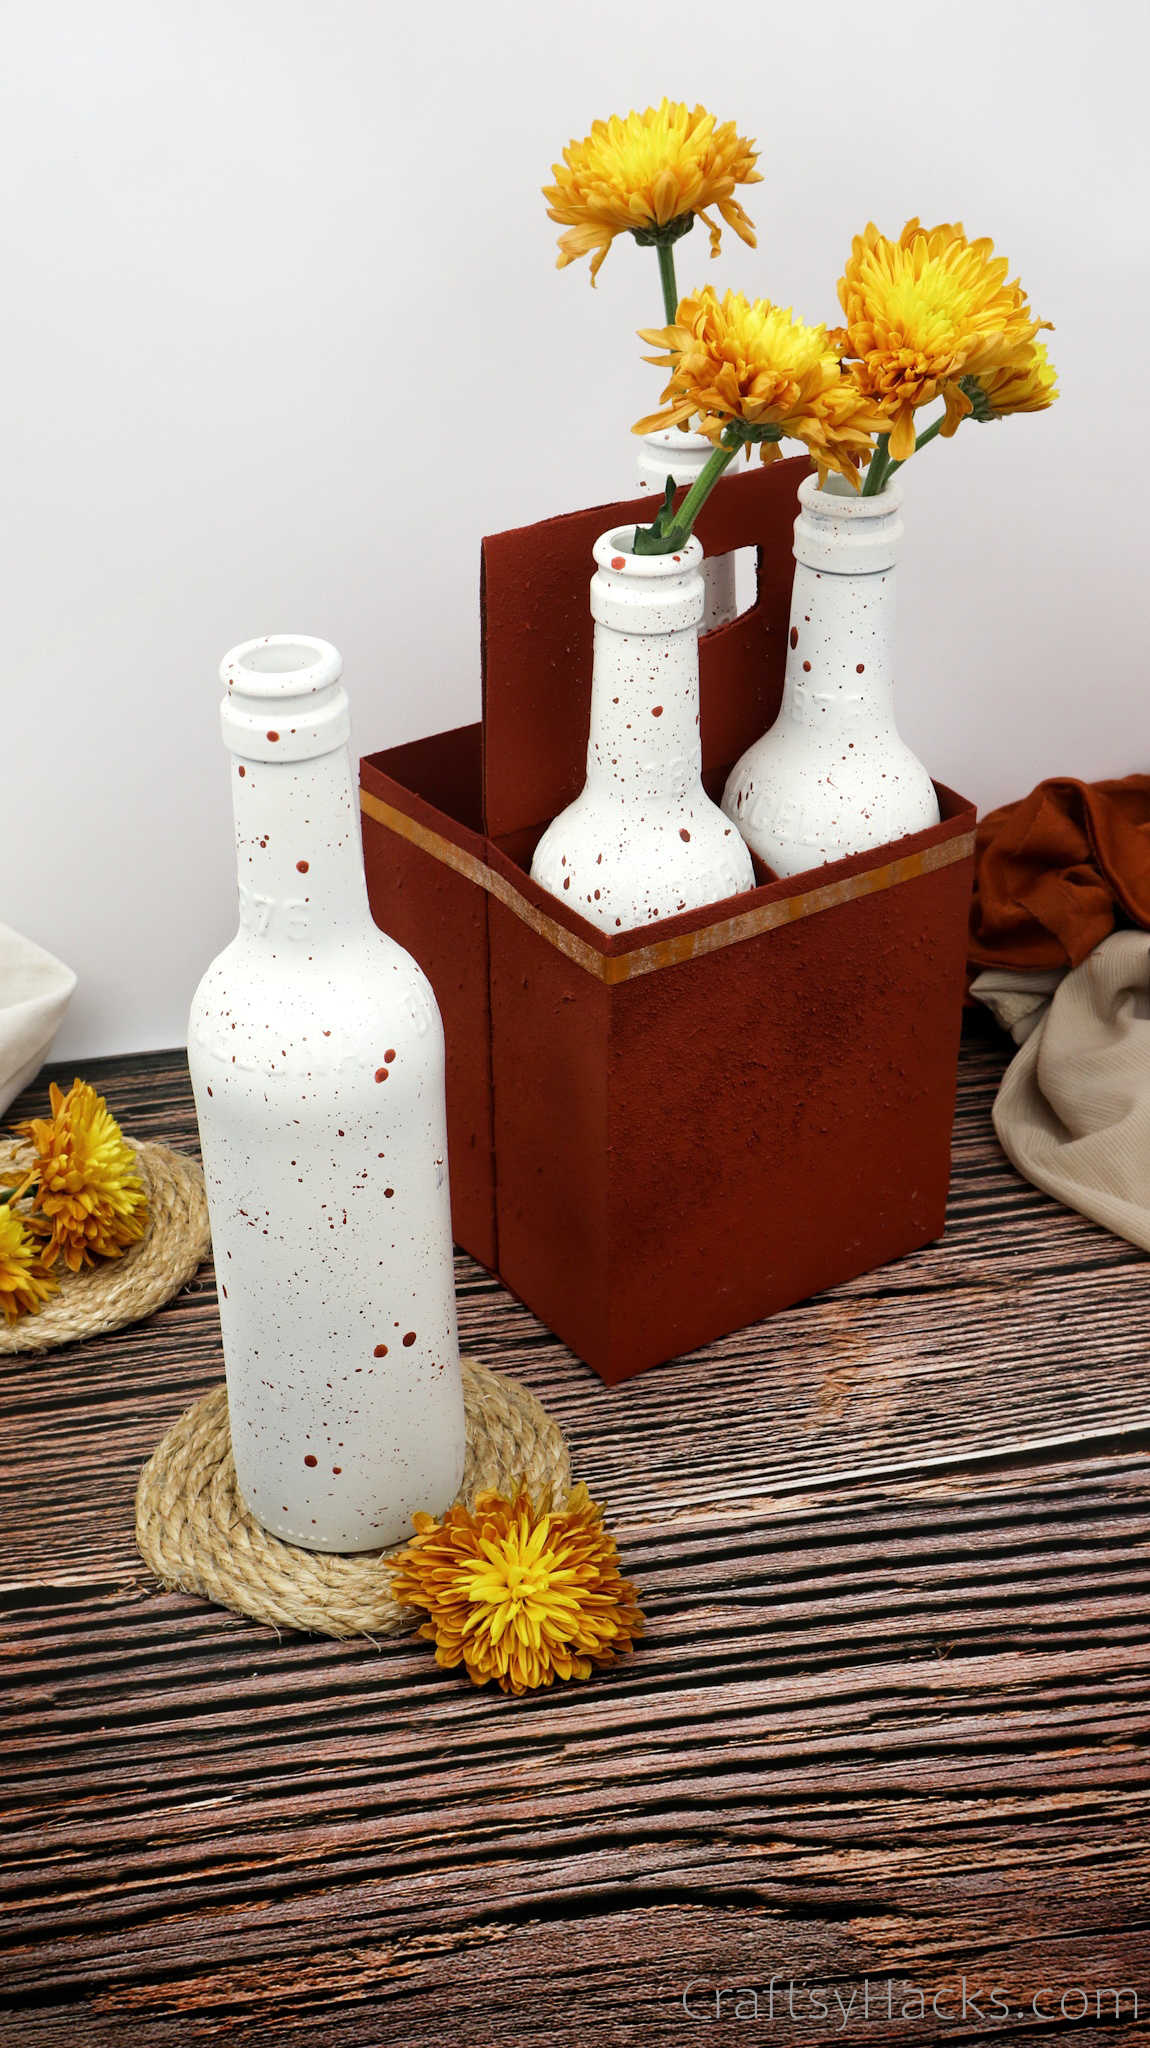 upcycled bottle with flowers